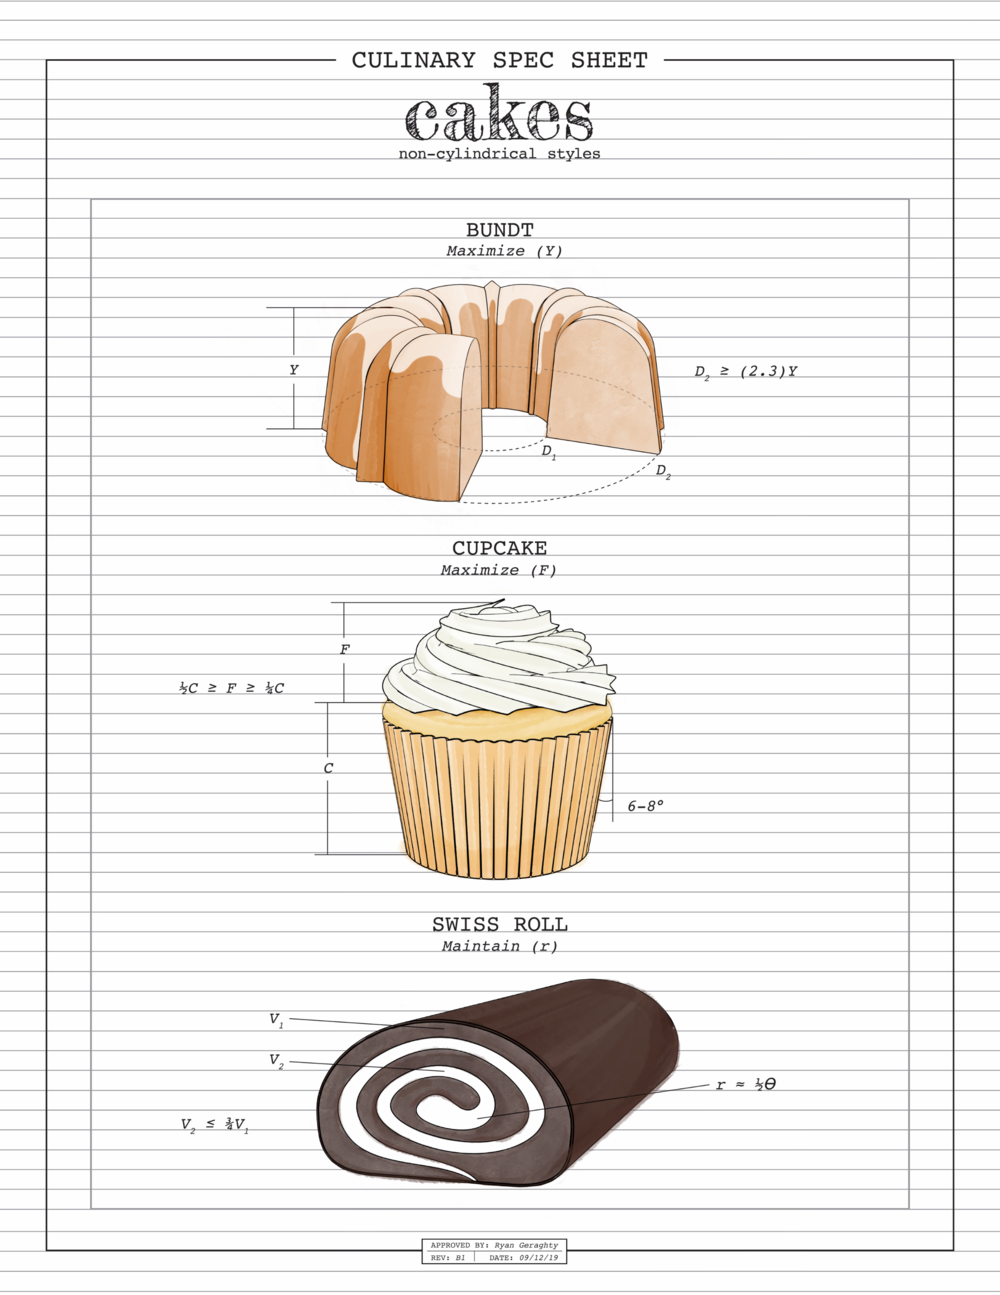 CSS_Cakes.png